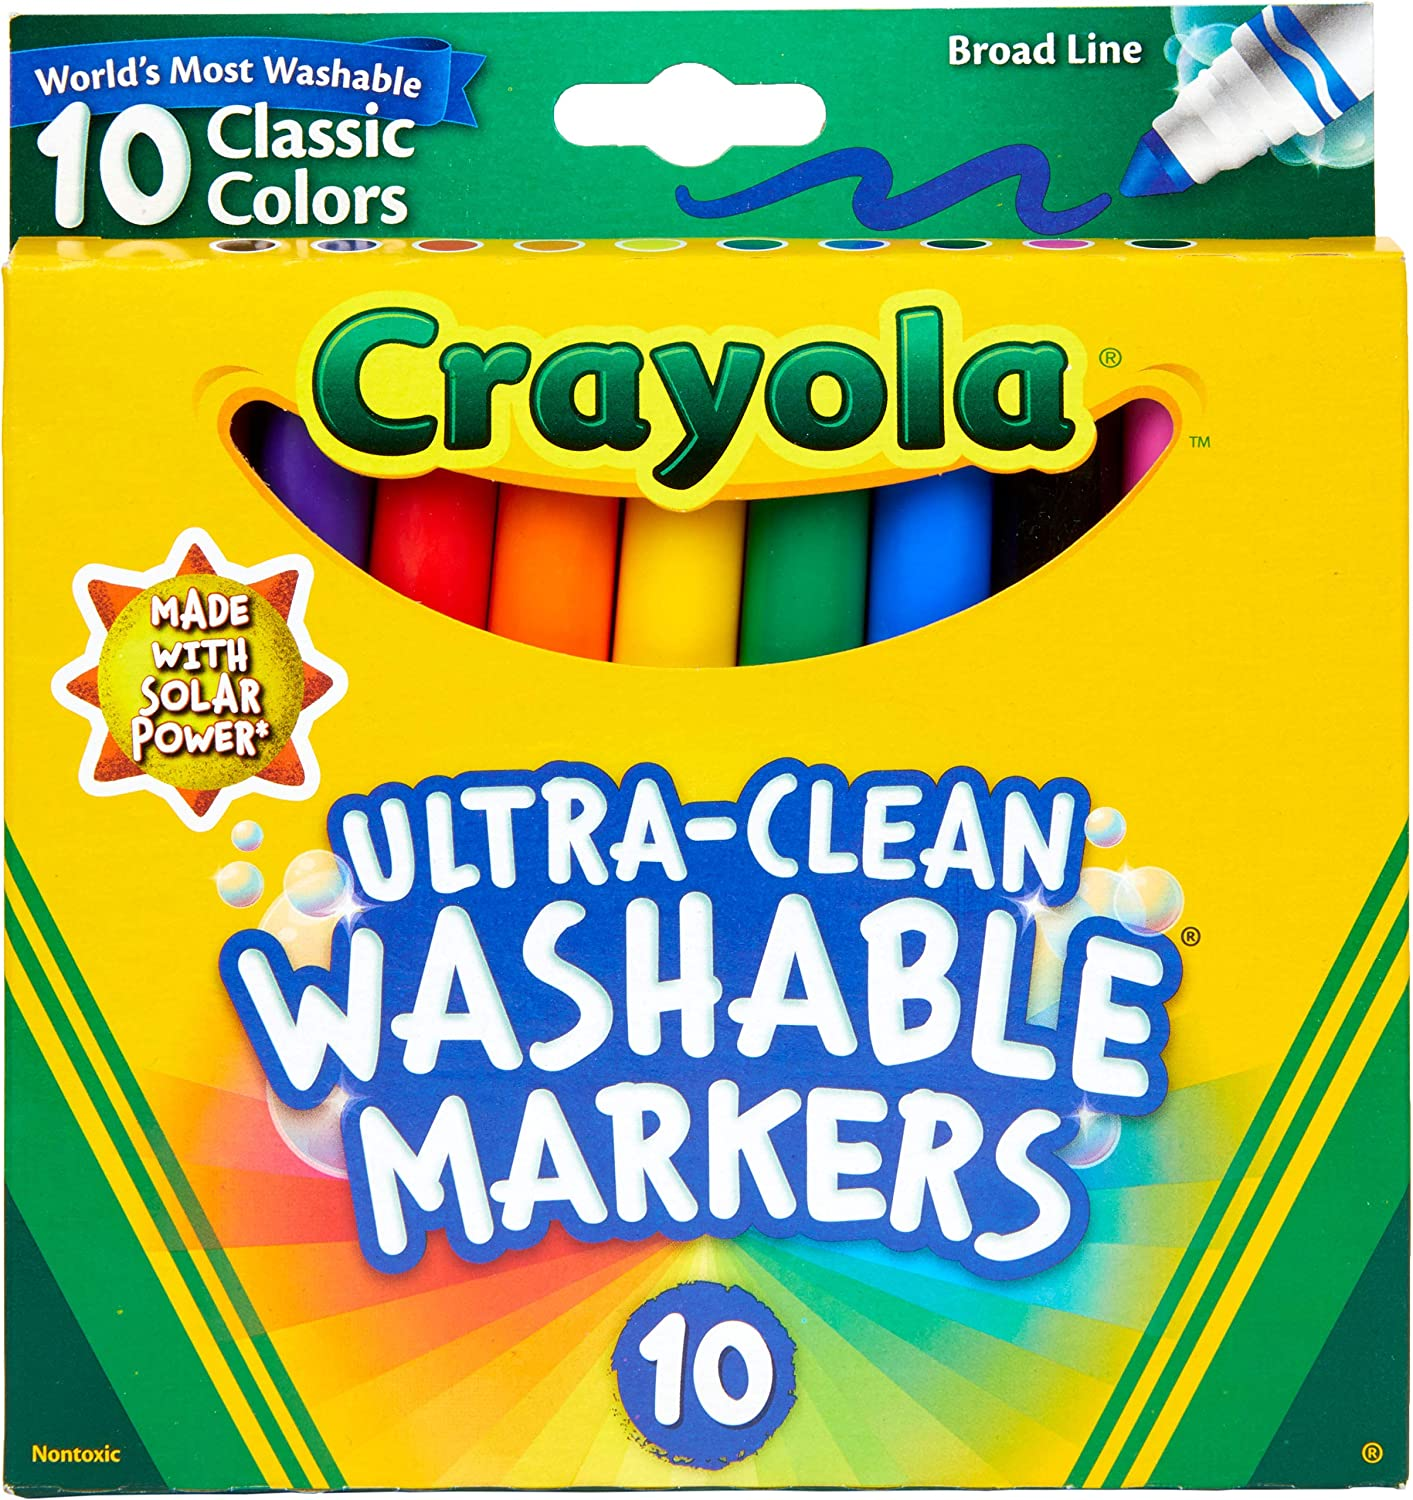 Crayola Ultra Clean Washable Markers, Broad Line, Classic Colors, 10 Count